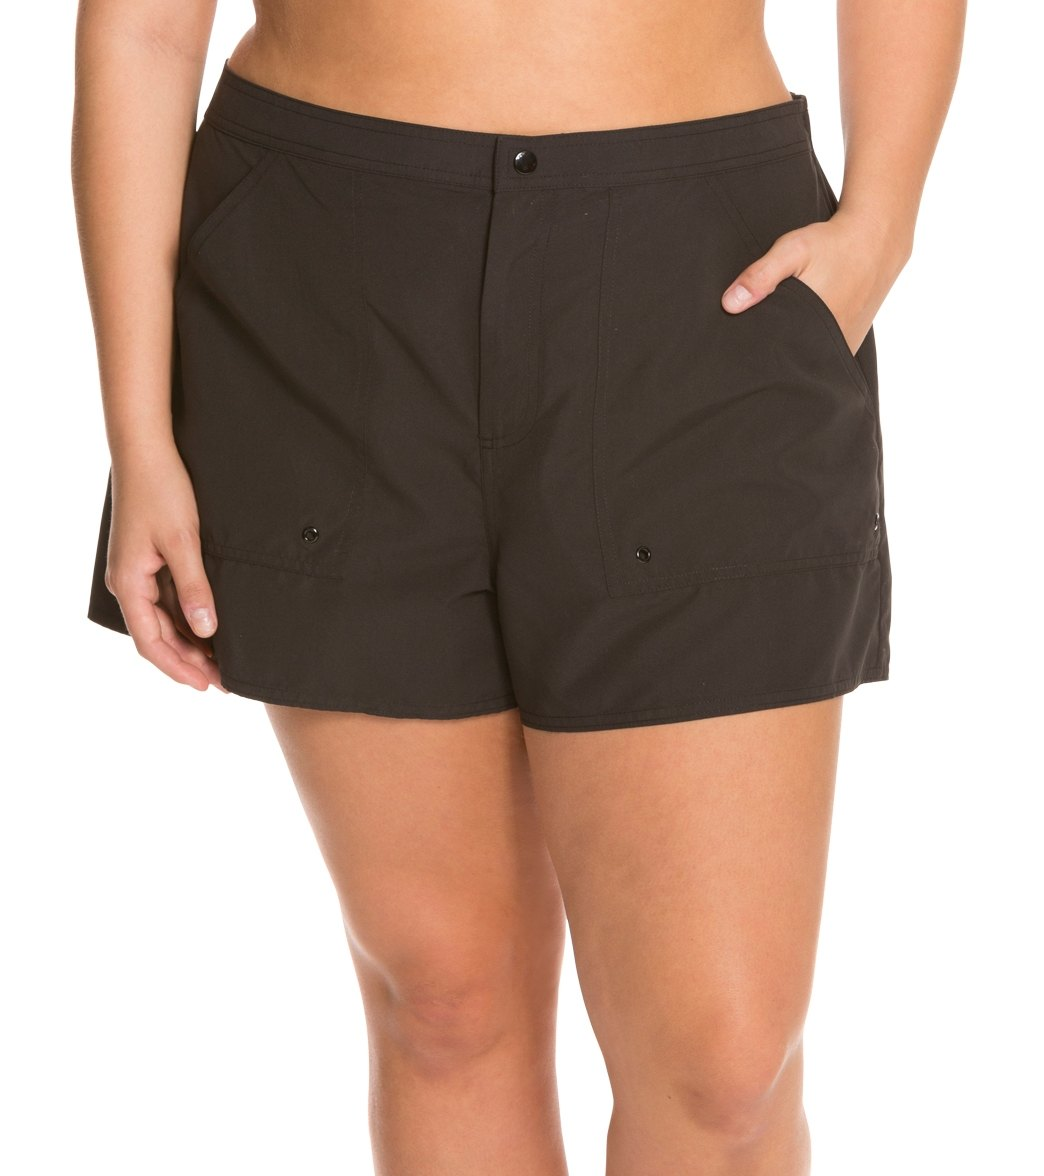 db78f11429a Maxine Women s Plus Size Solid Woven Boardshort at SwimOutlet.com